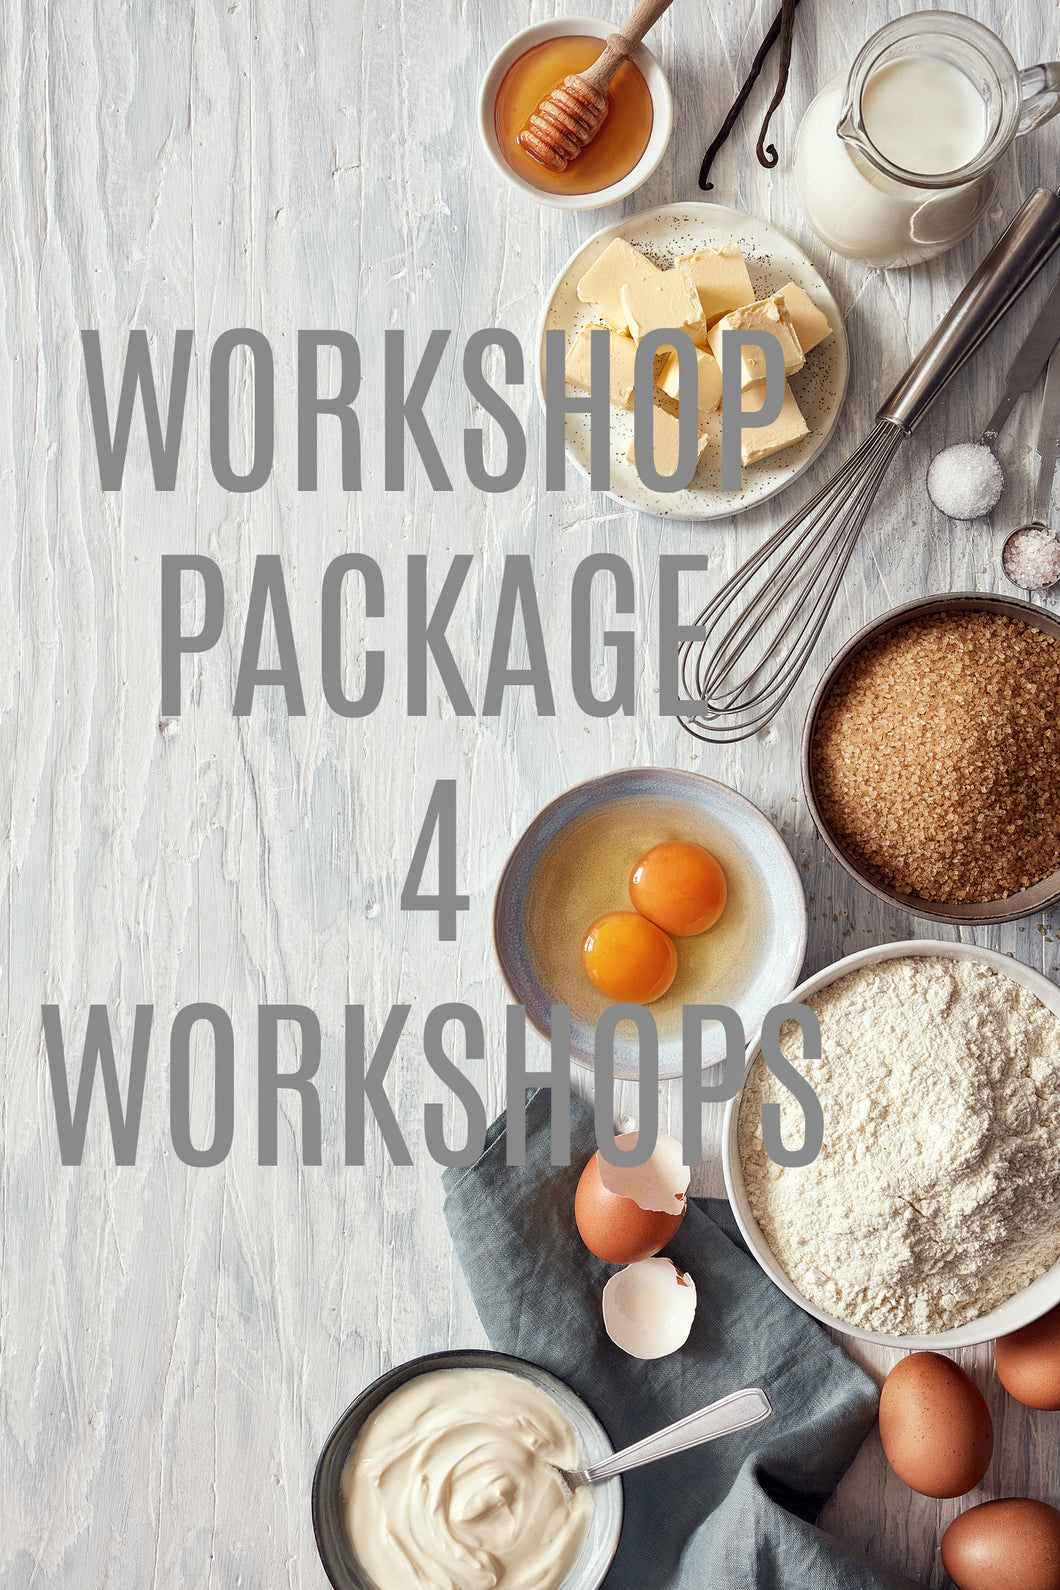 DGW Workshops Package (4 WORKSHOPS)